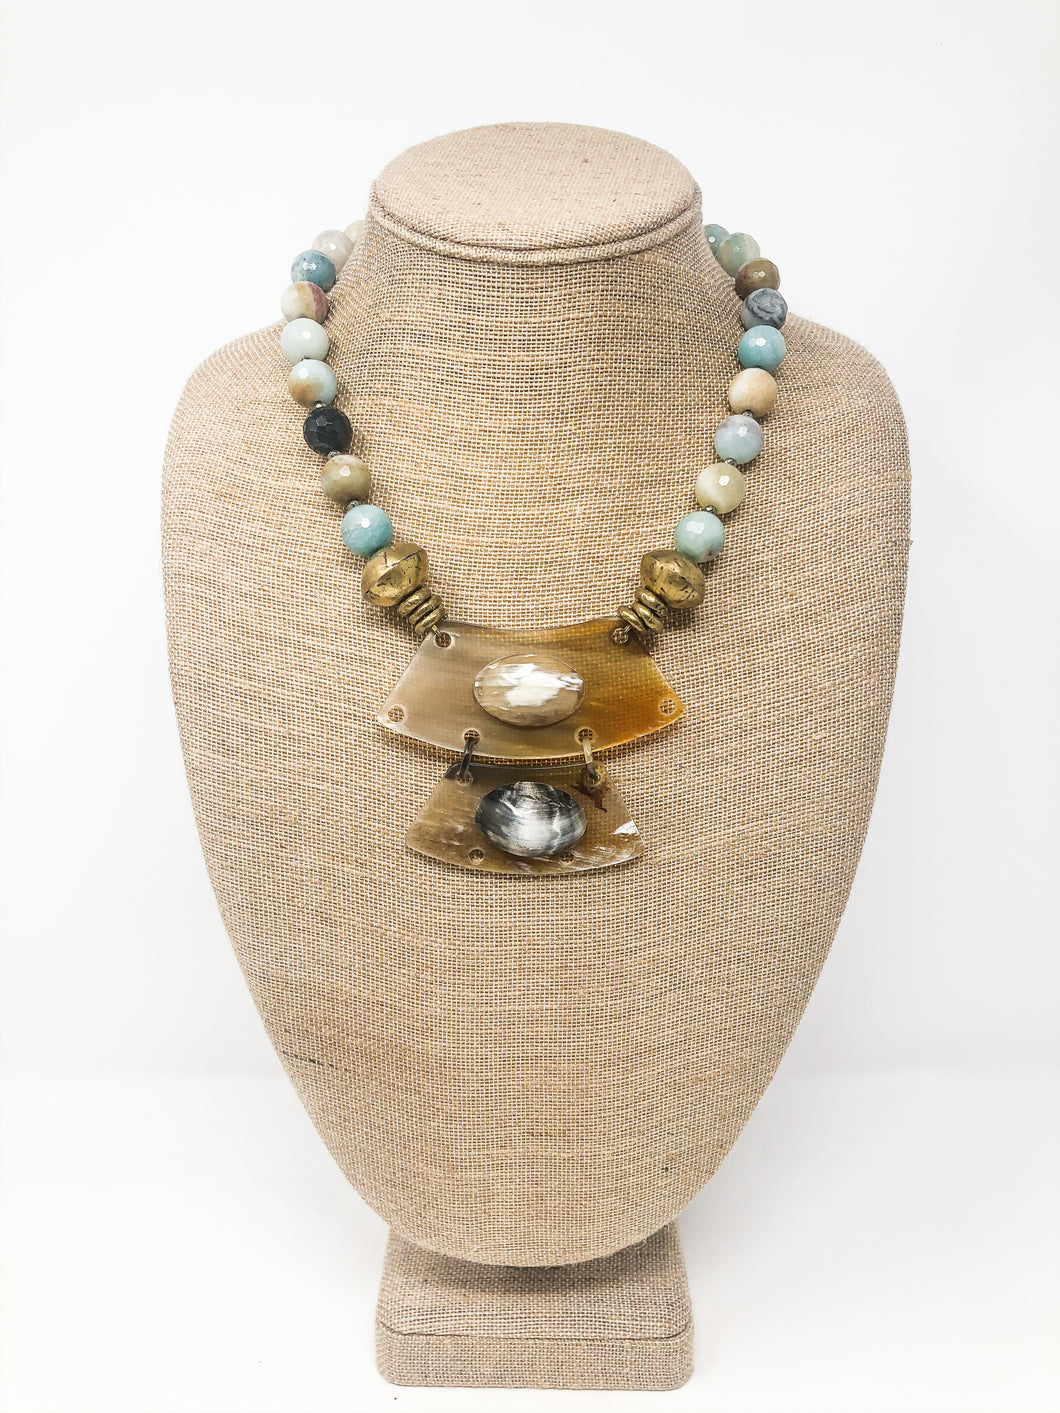 Karina Buffalo Horn Necklace